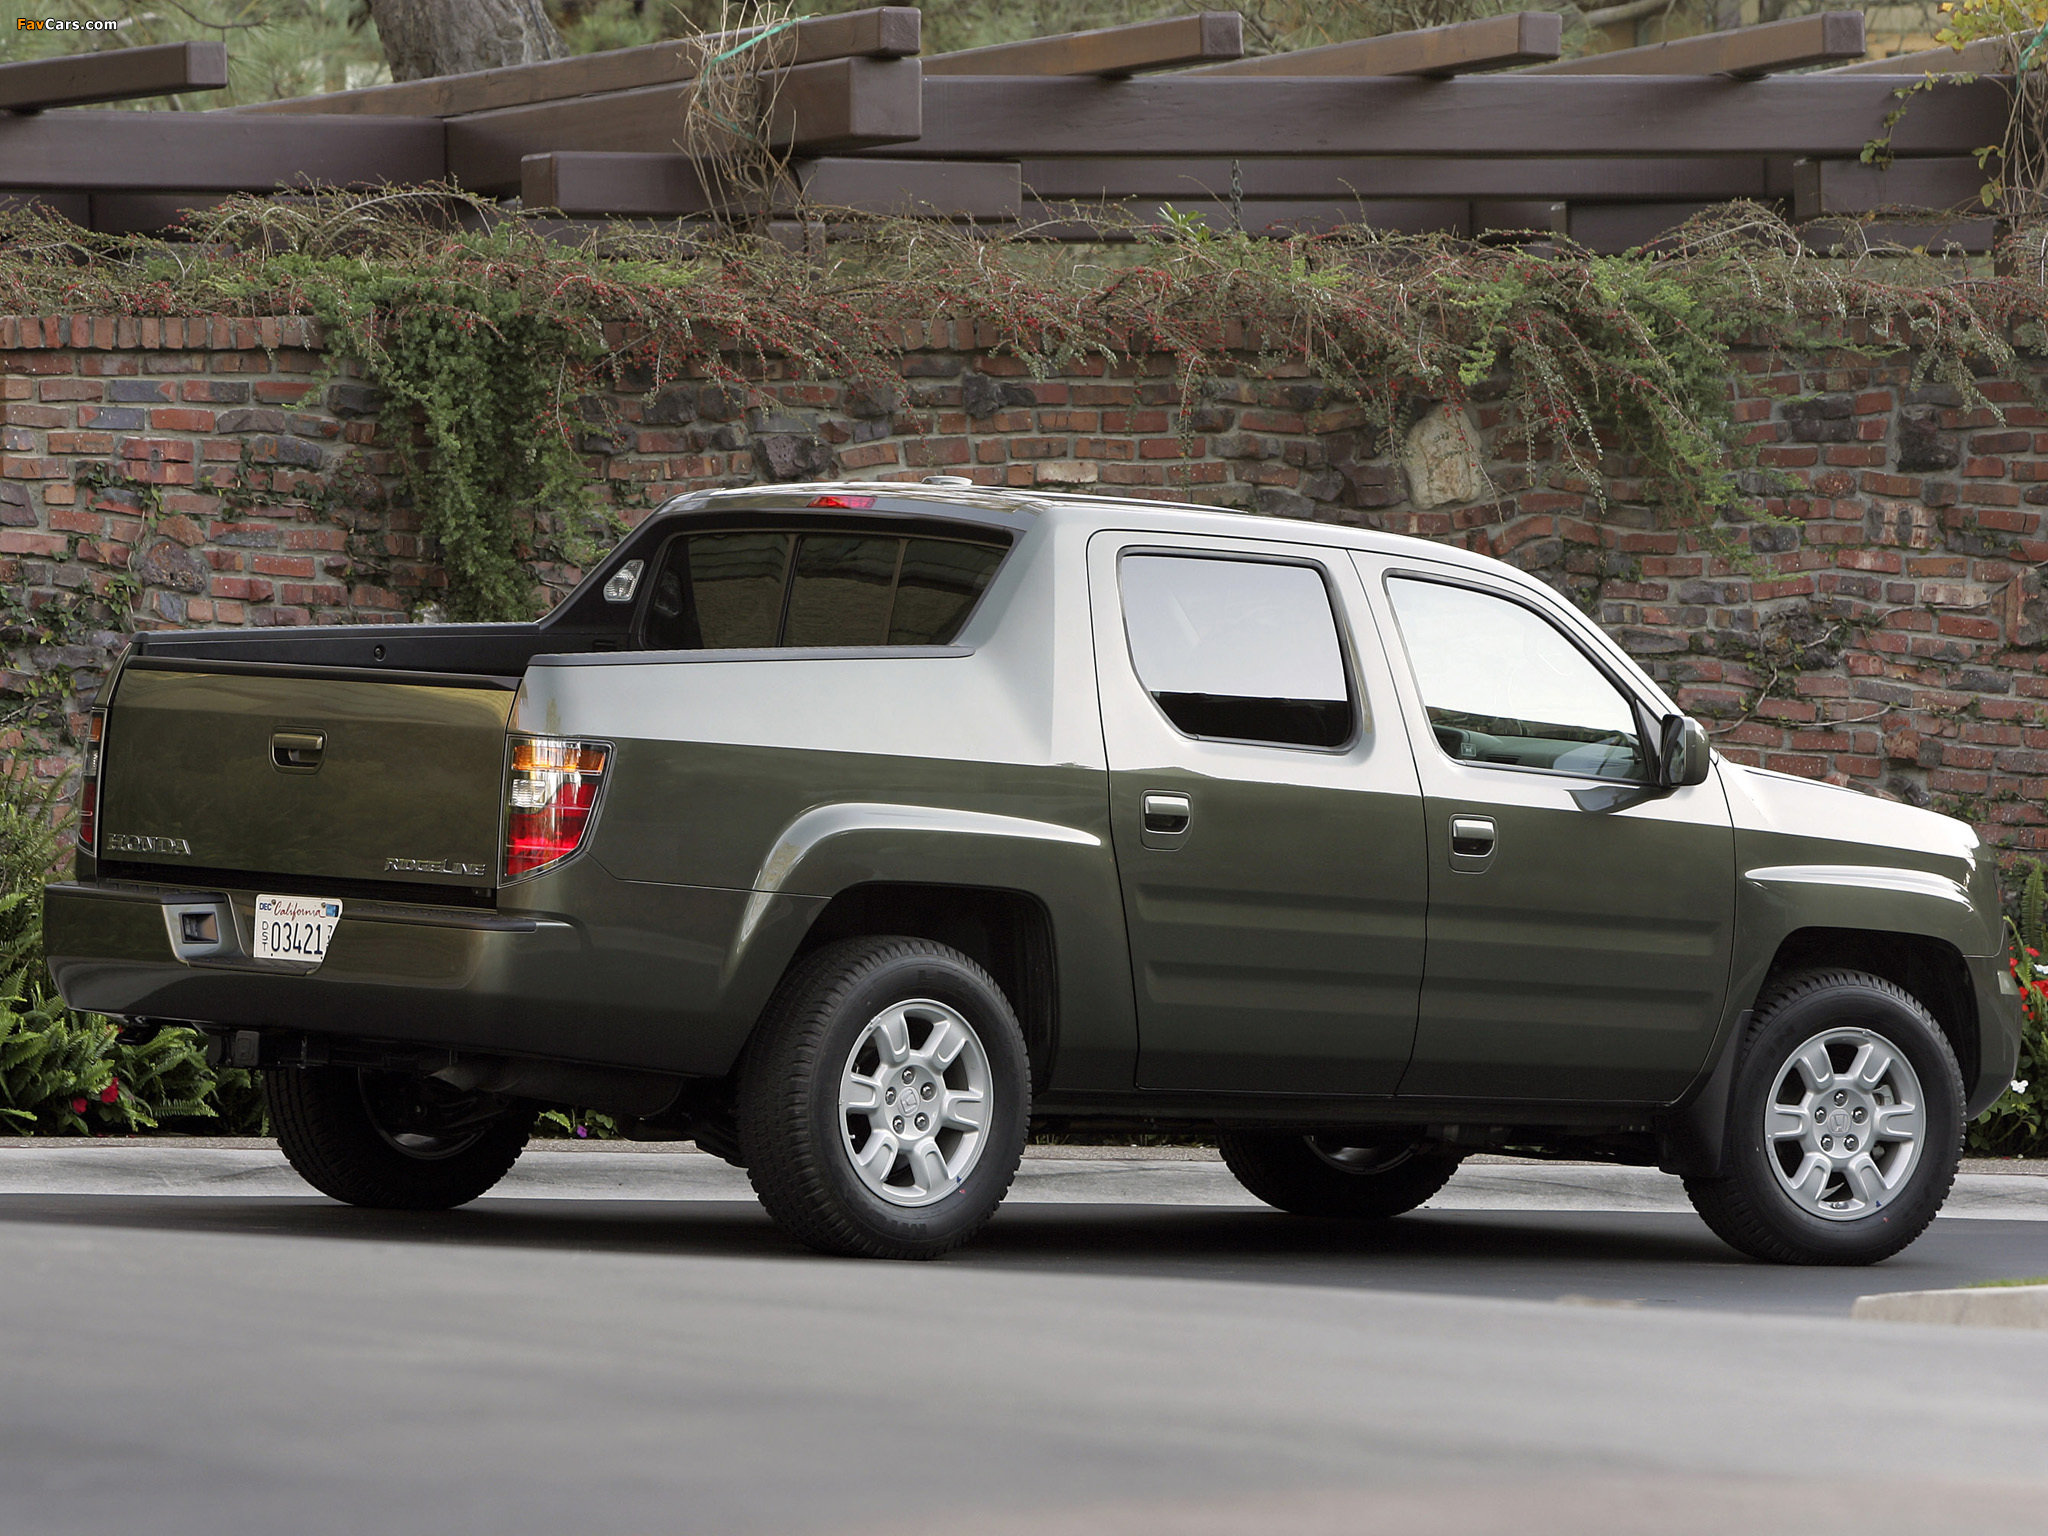 honda ridgeline rtl 2006 08 images 2048x1536. Black Bedroom Furniture Sets. Home Design Ideas